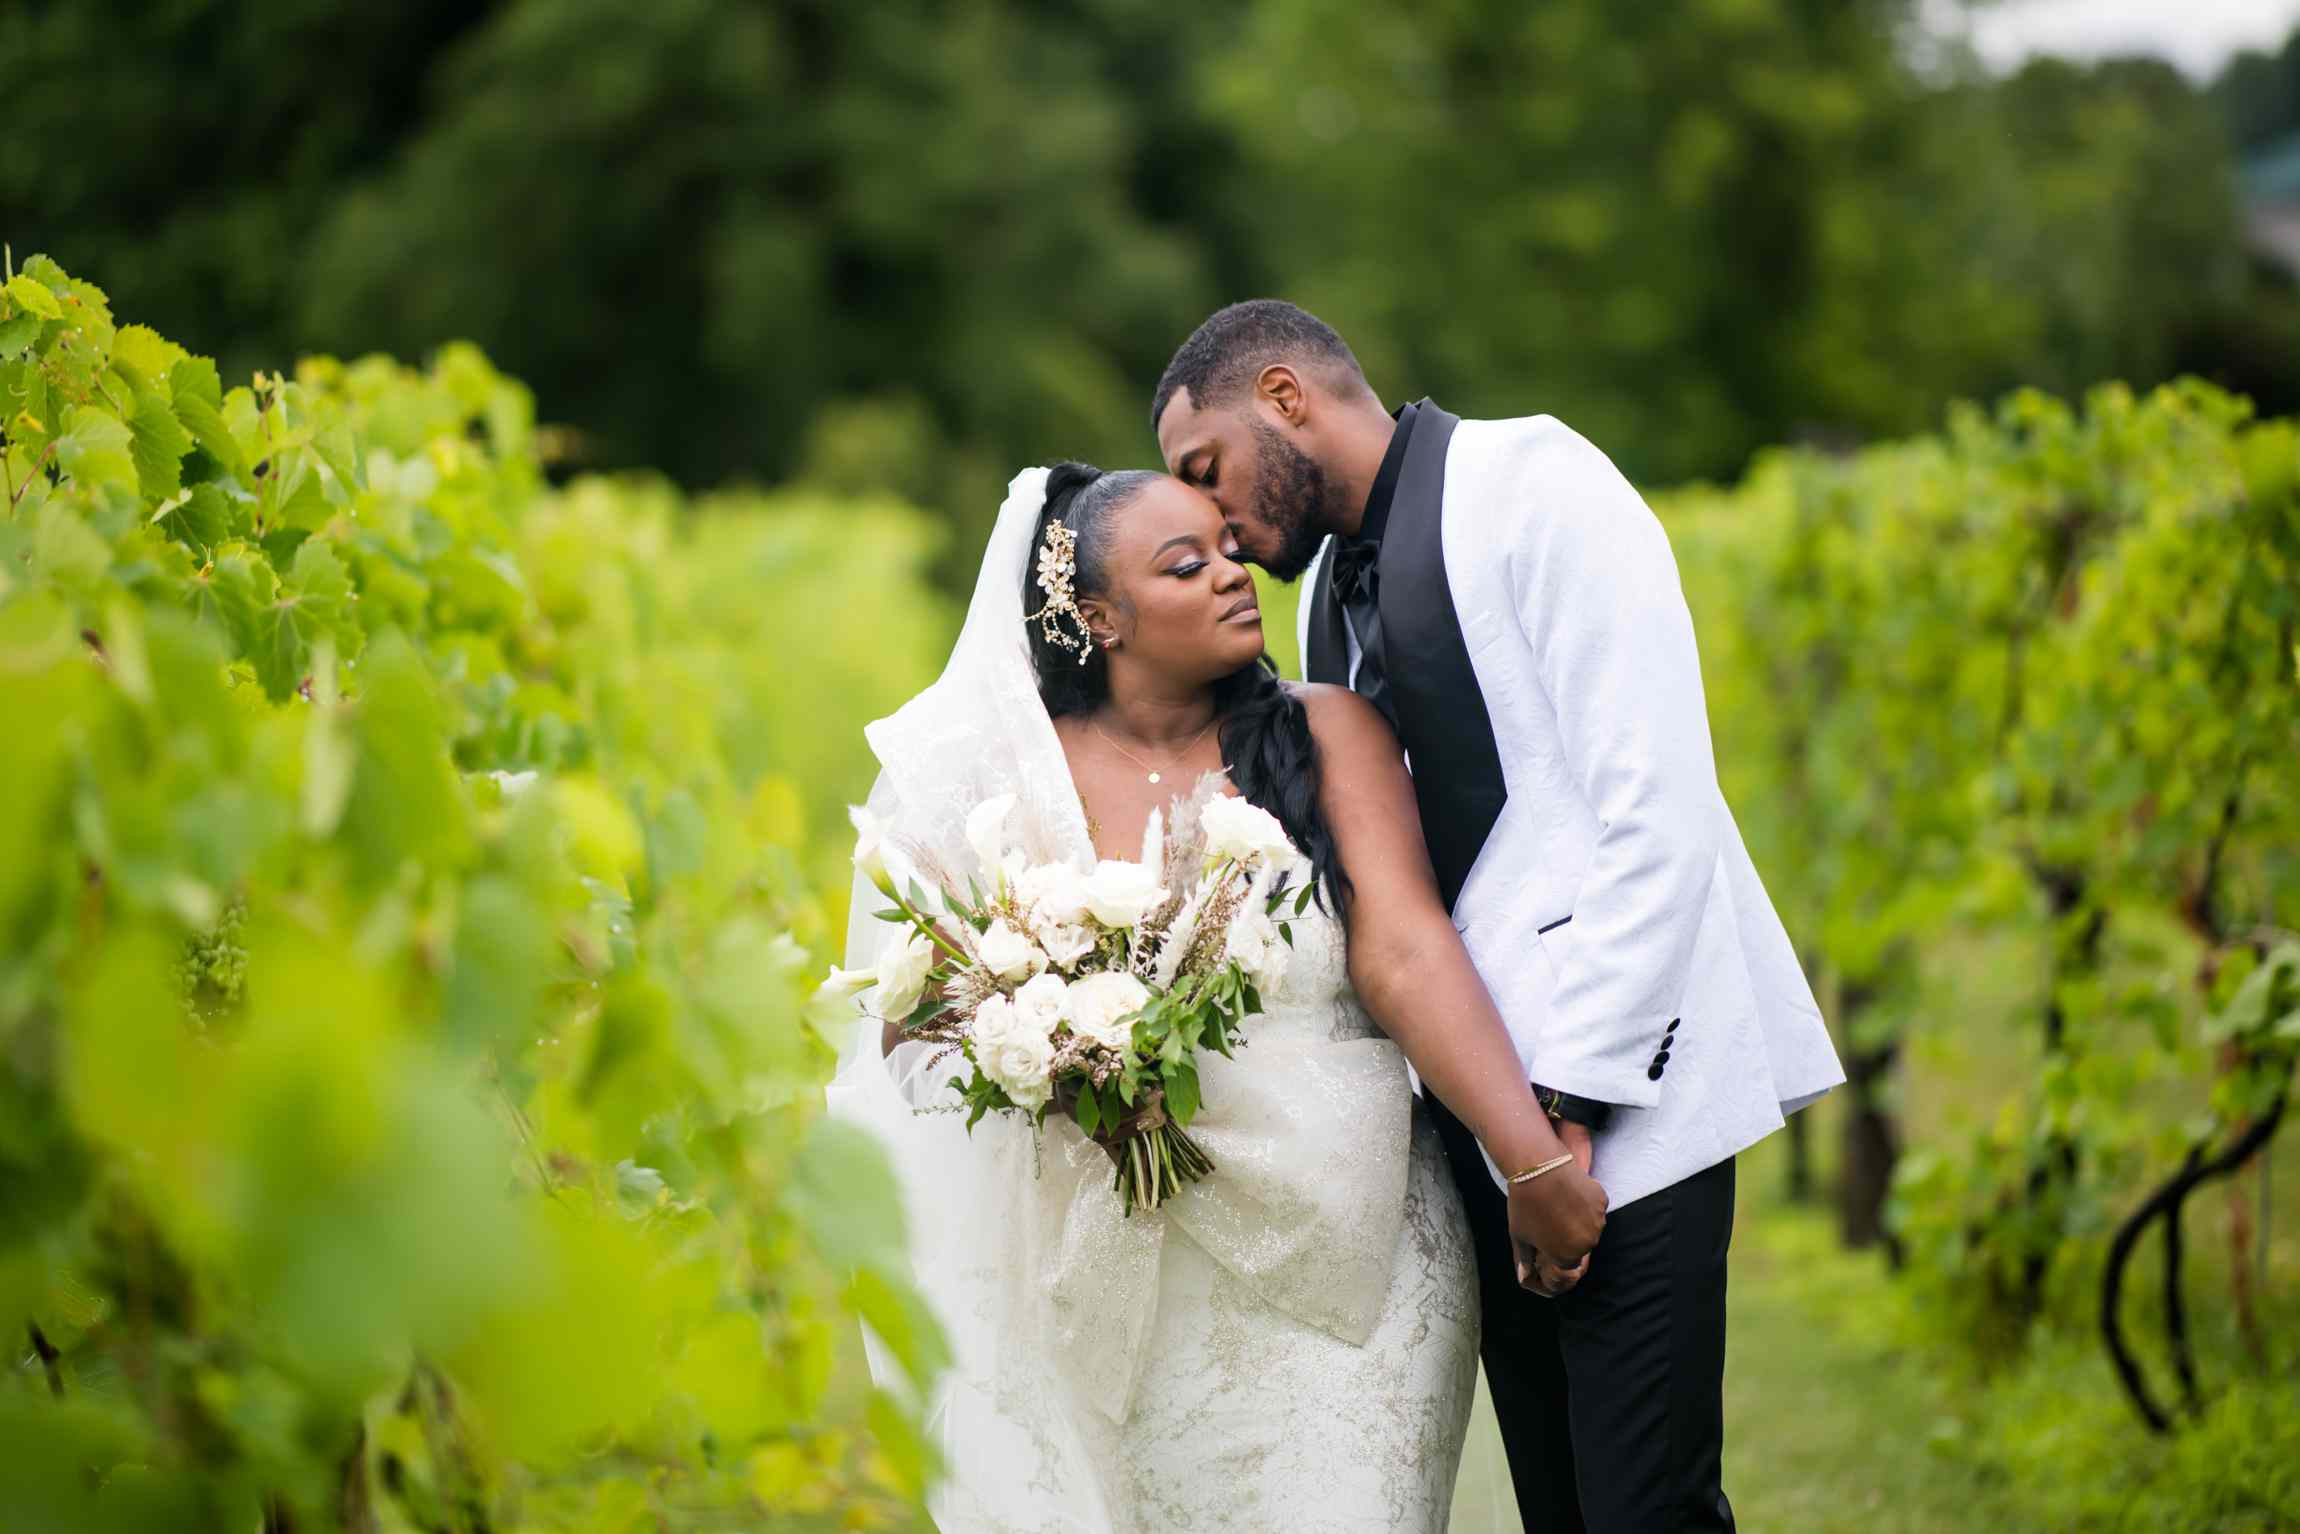 Couple shot in the vineyard